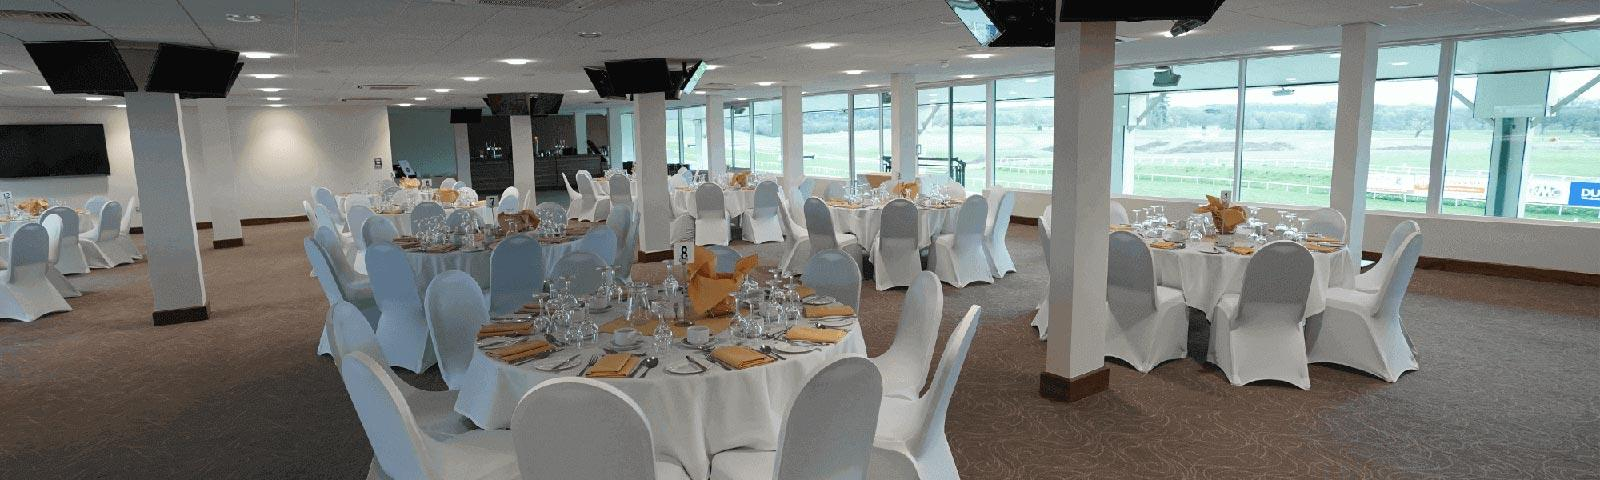 The View Restaurant at Chepstow Racecourse set up for a raceday.